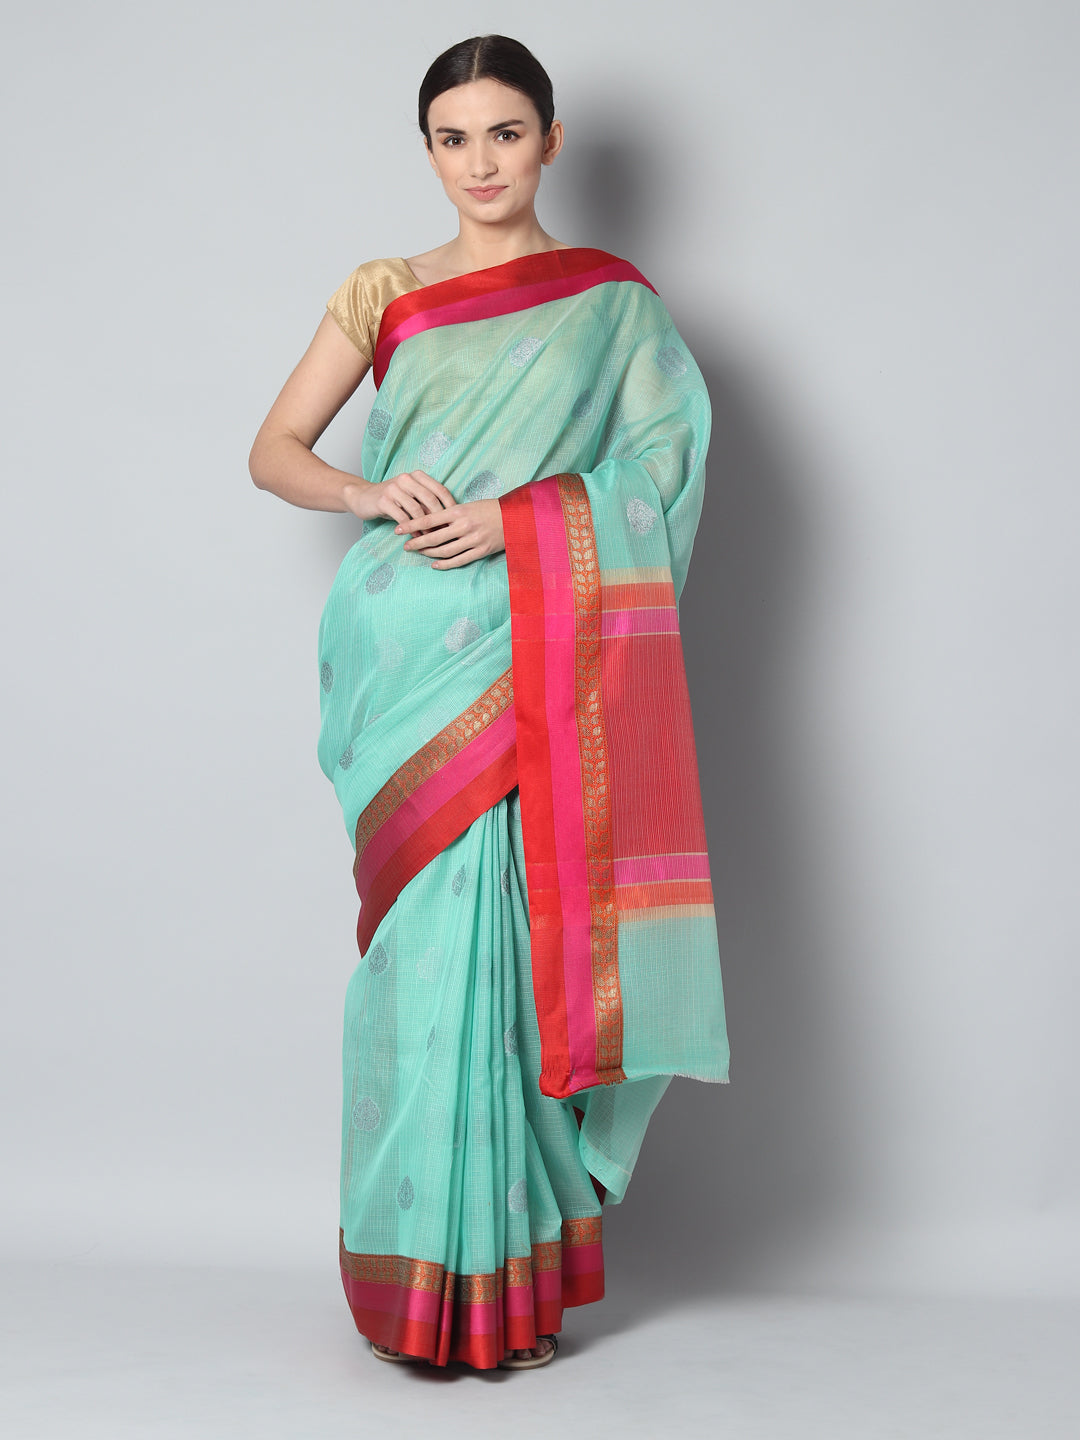 Light green kota saree with silver zari booties and contrasting borders